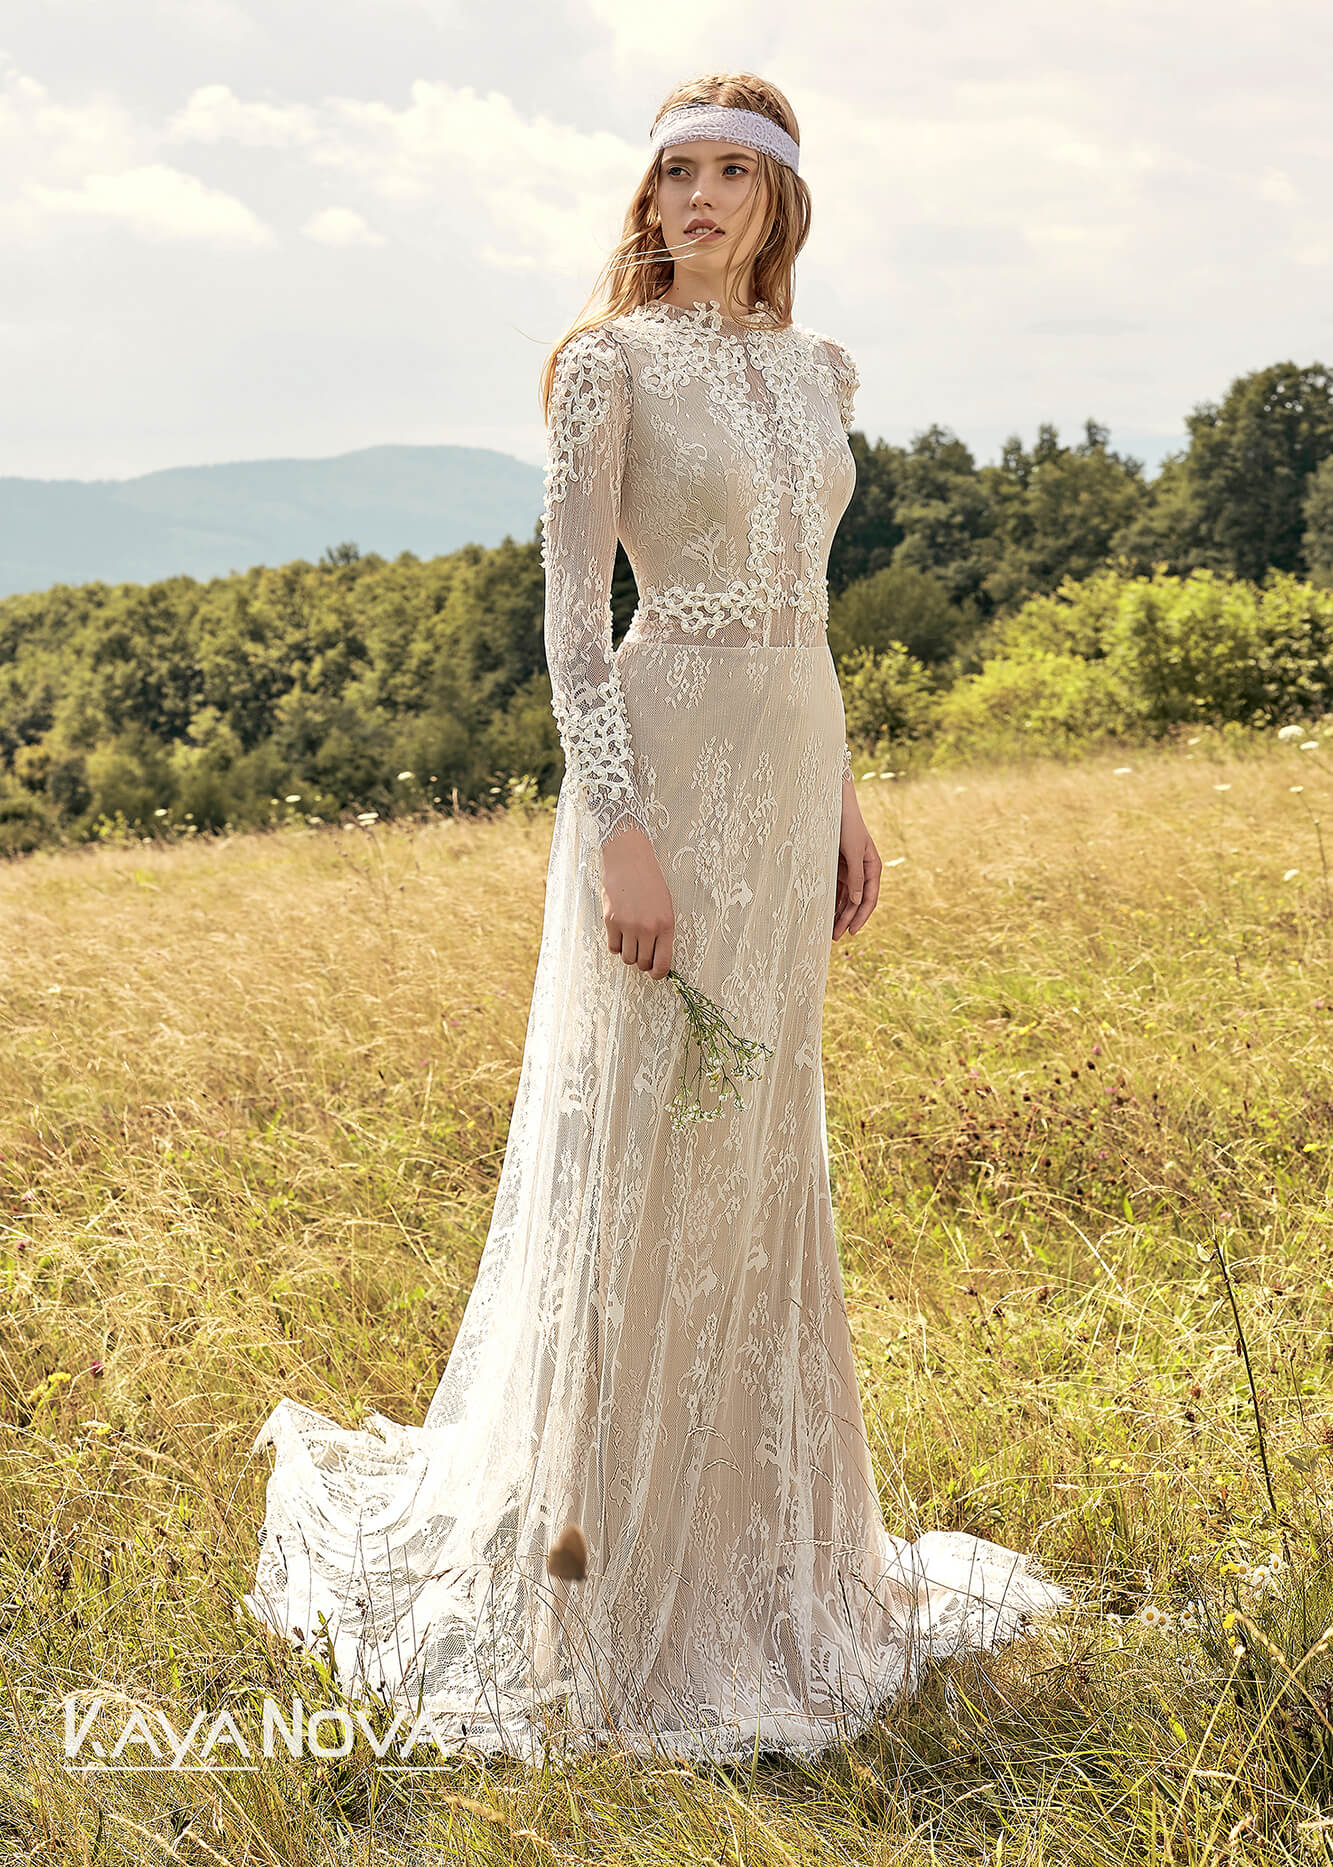 https://kayawedding.com/images/stories/virtuemart/product/Cameron 1.jpg